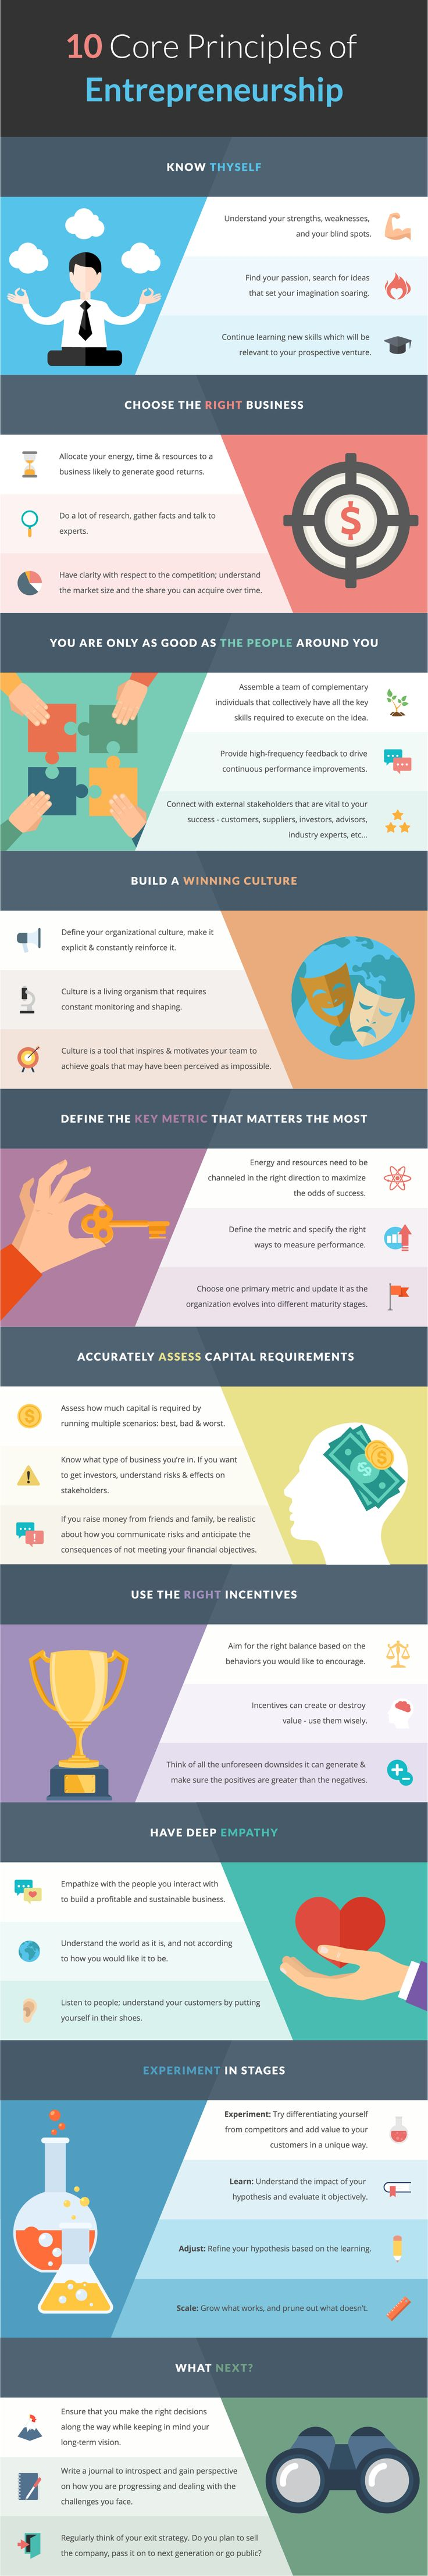 10 Core Principles of Entrepreneurship Infographic - http://elearninginfographics.com/10-core-principles-entrepreneurship-infographic/